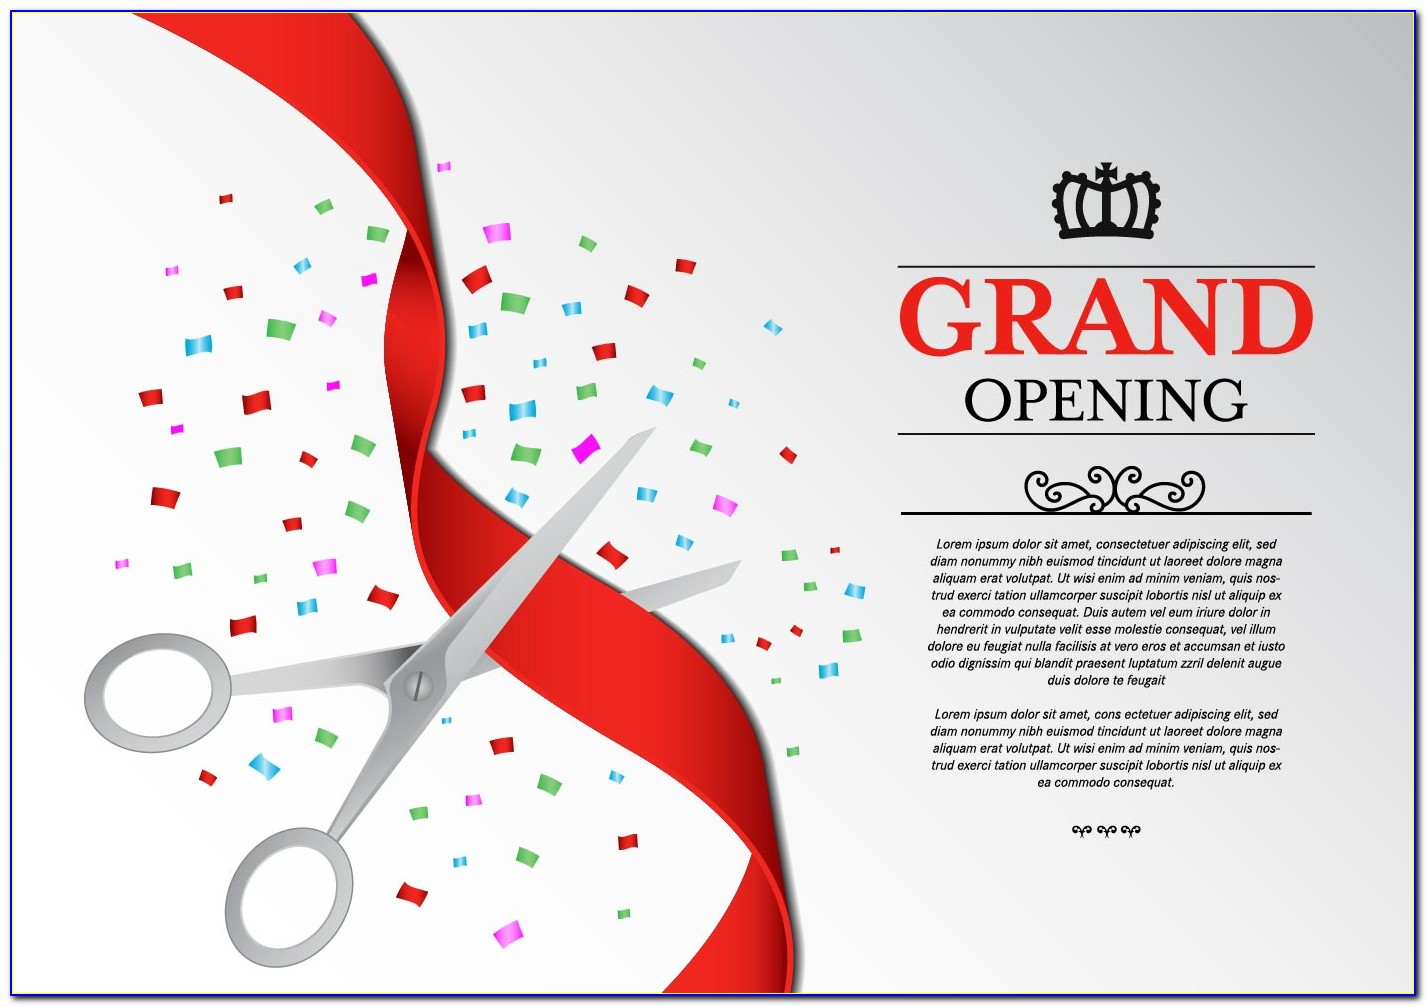 Grand Opening Invitation Card Design Vector